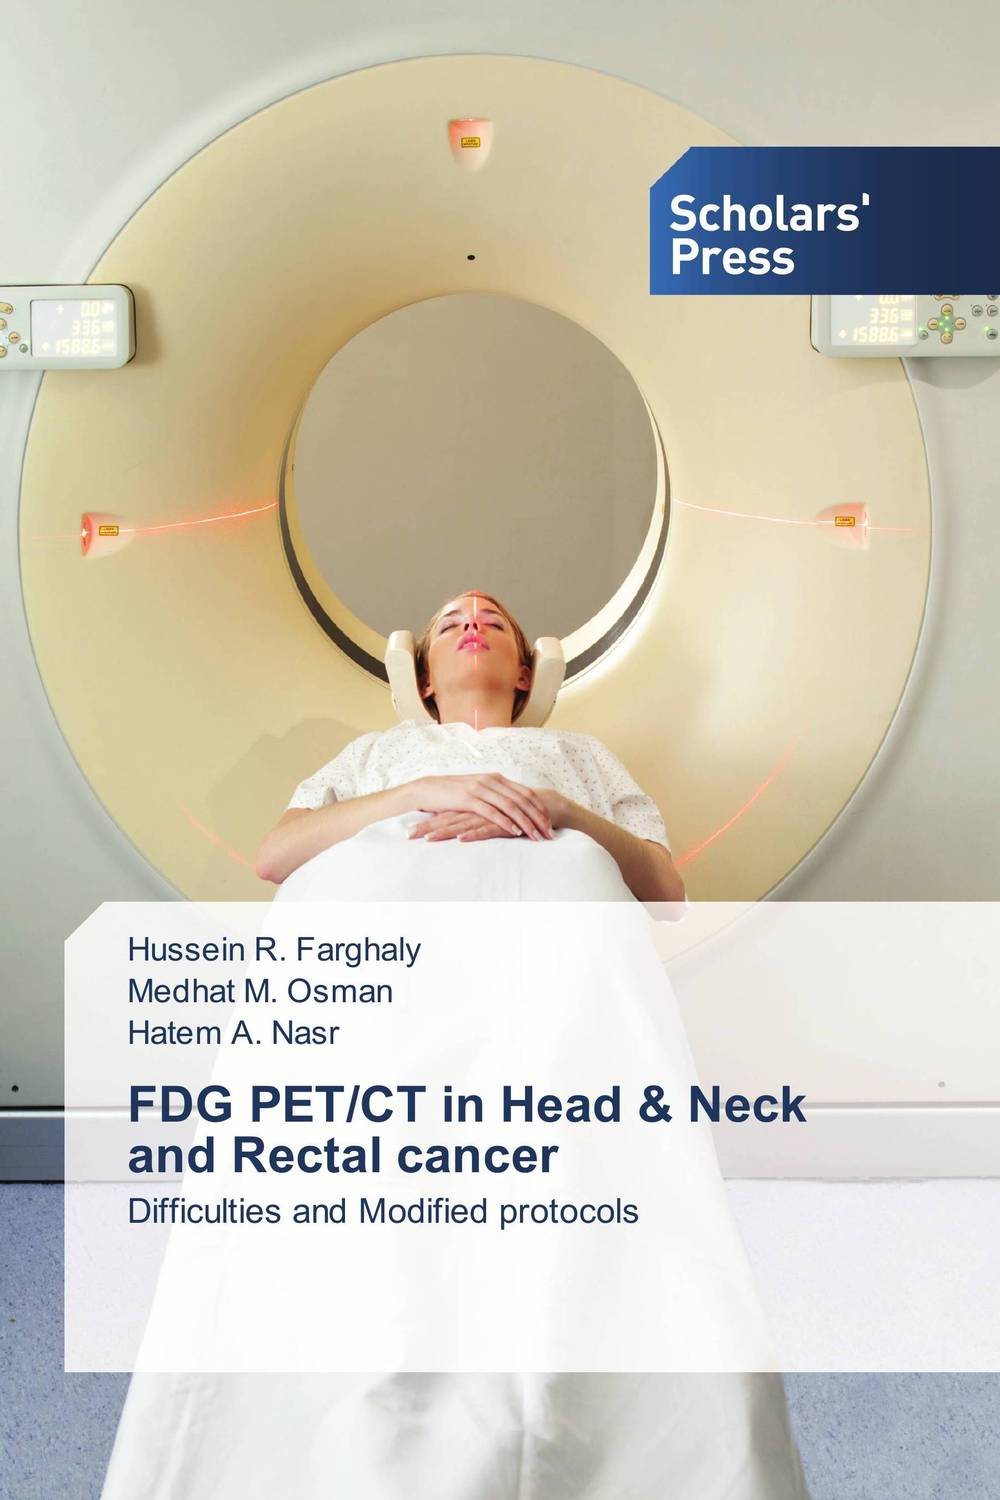 Фото FDG PET/CT in Head & Neck and Rectal cancer cervical cancer in amhara region in ethiopia